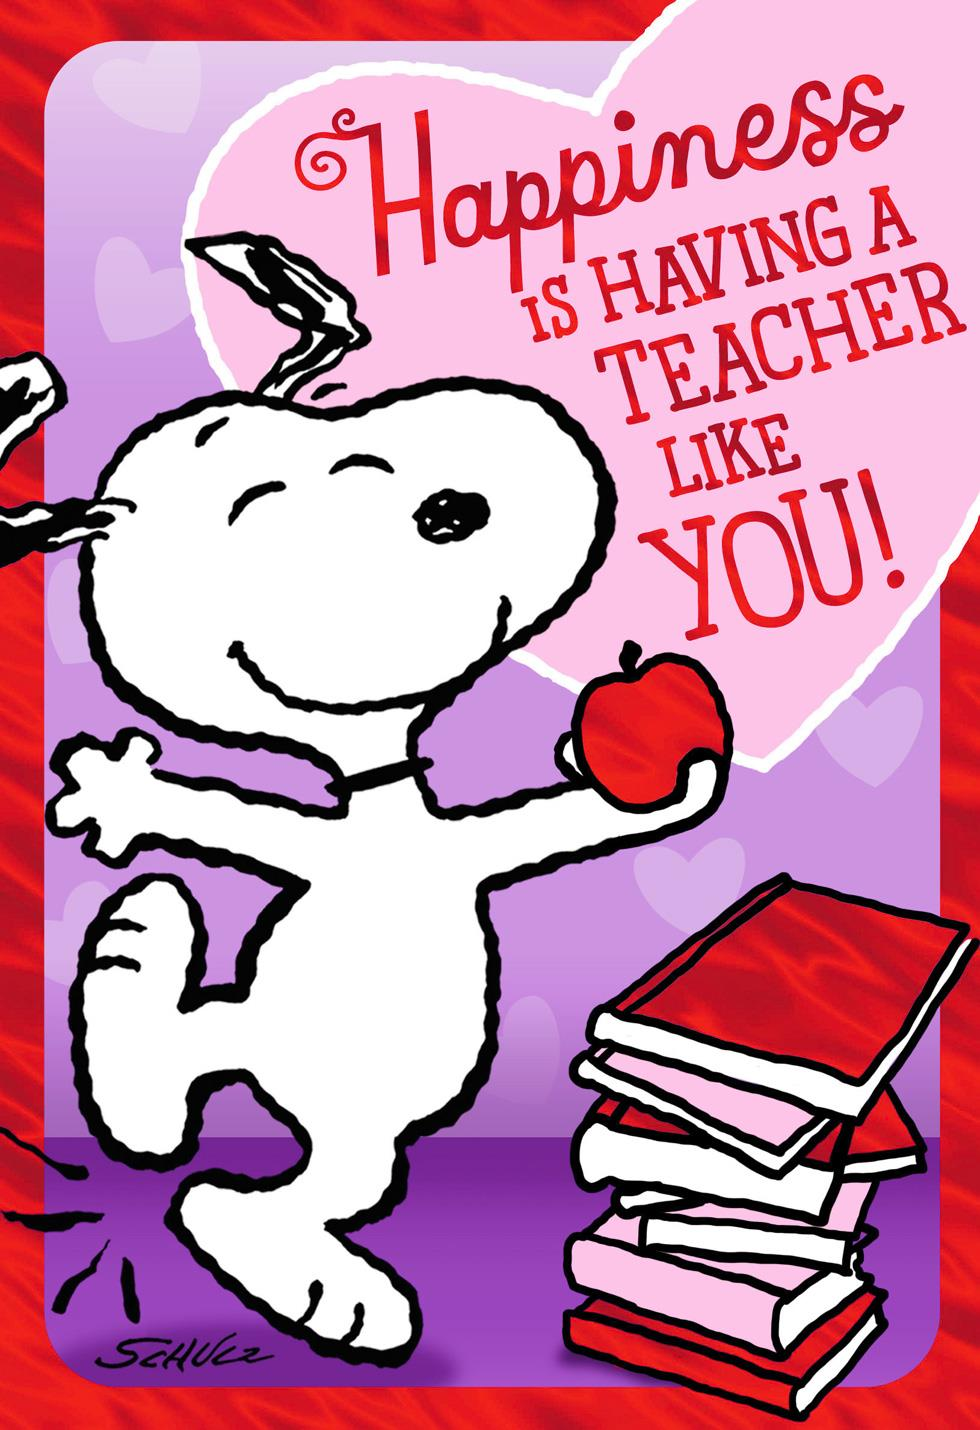 peanuts u00ae dancing snoopy valentine u0026 39 s day card for teacher - greeting cards